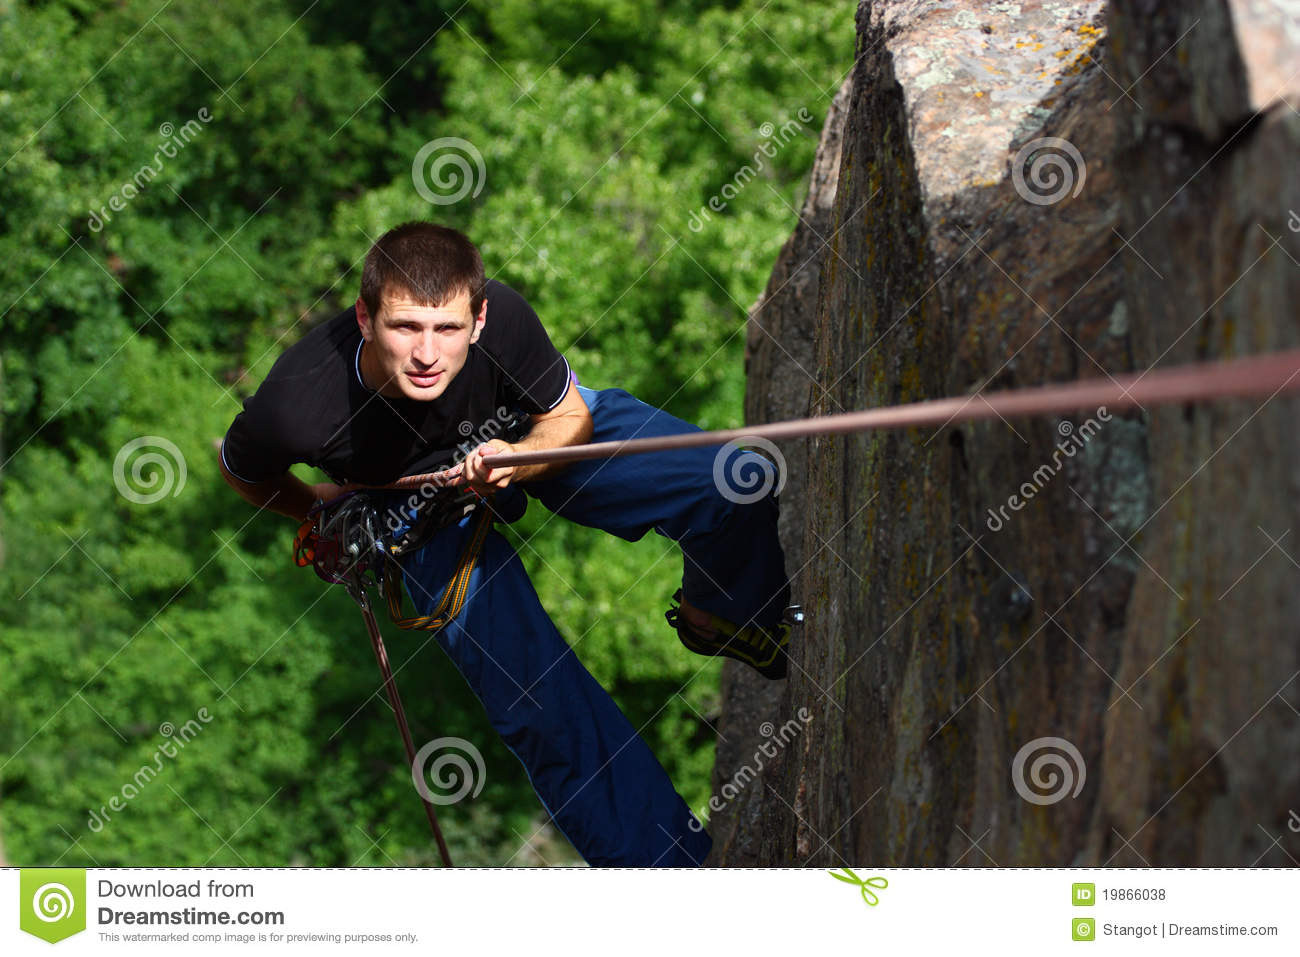 Climber rappelling